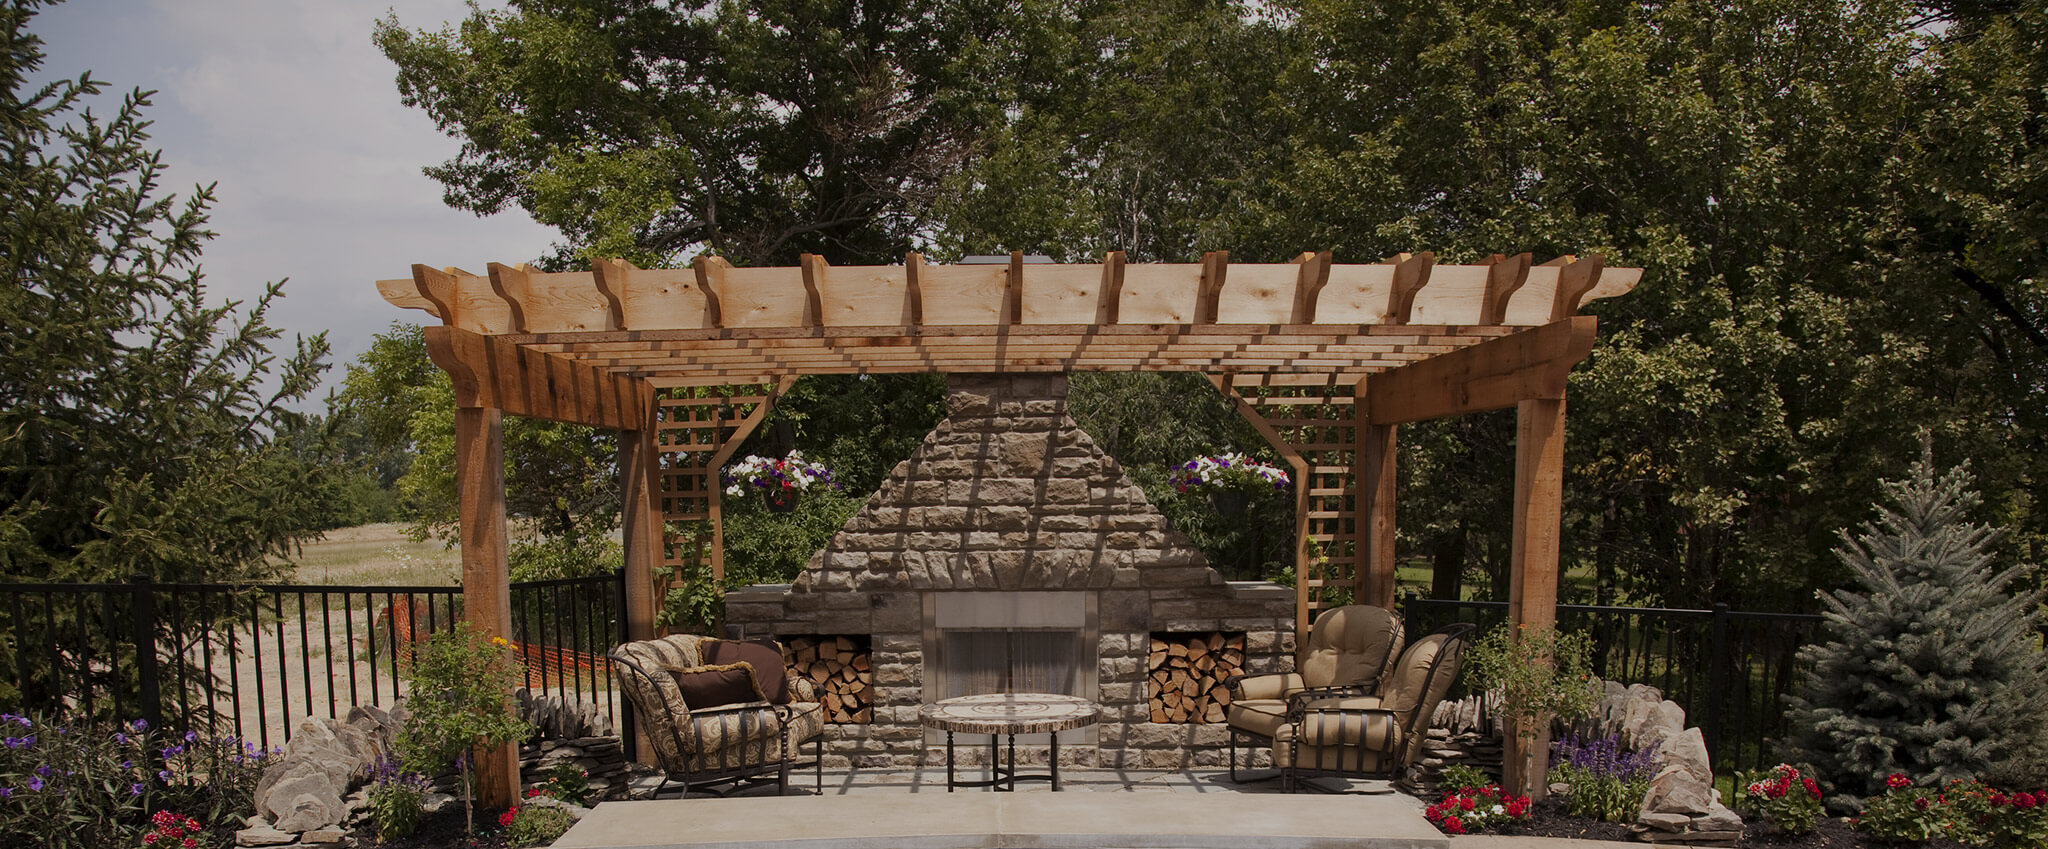 Pergola with outdoor fireplace